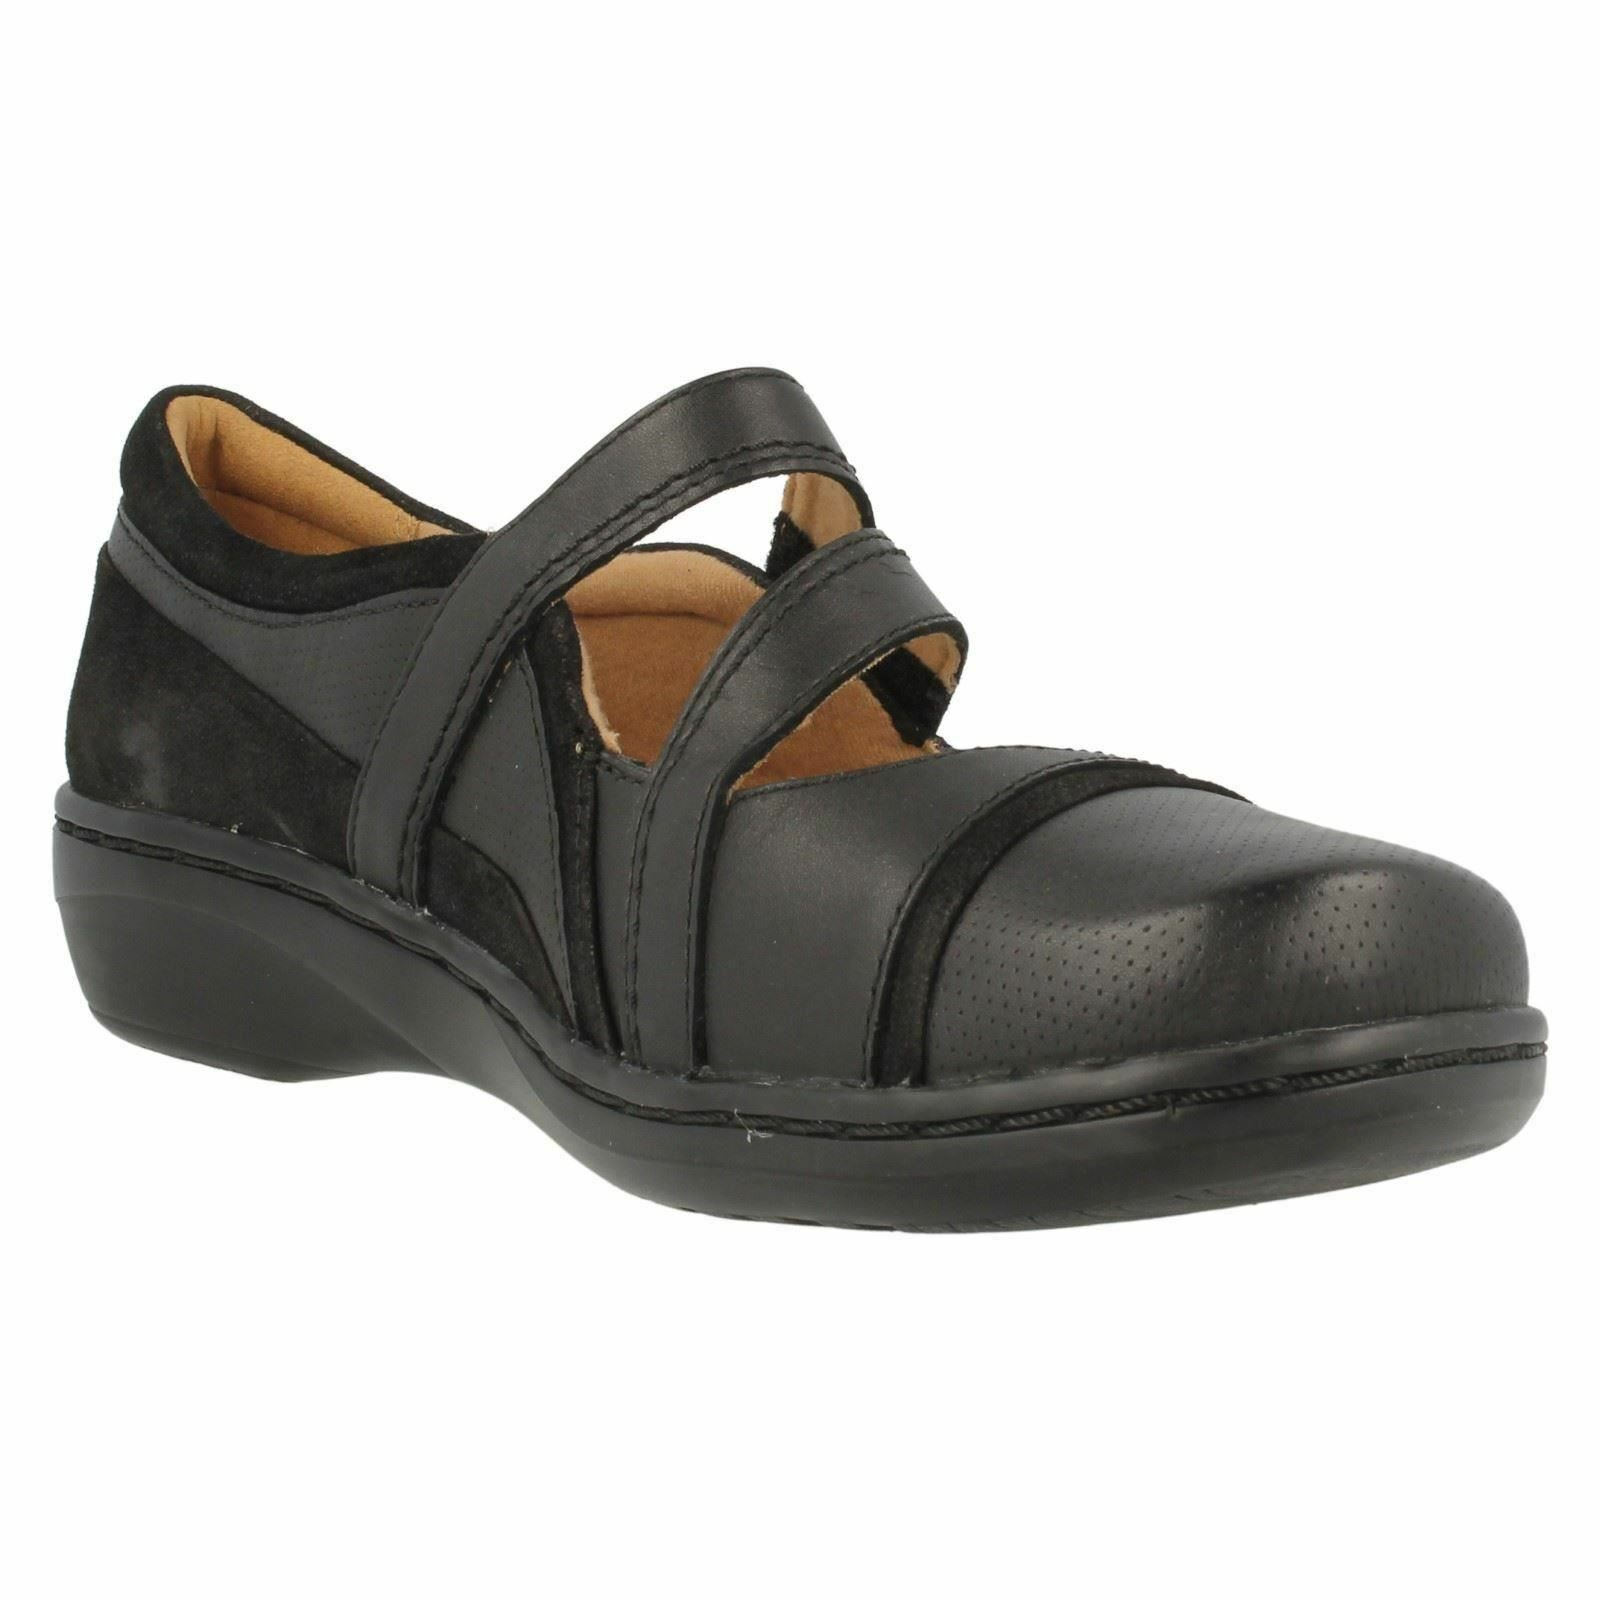 EVIANNA CROWN LADIES LIGHT CLARKS LEATHER MARY JANE LIGHT LADIES WEIGHT RIPTAPE CASUAL SHOES 75f0ee